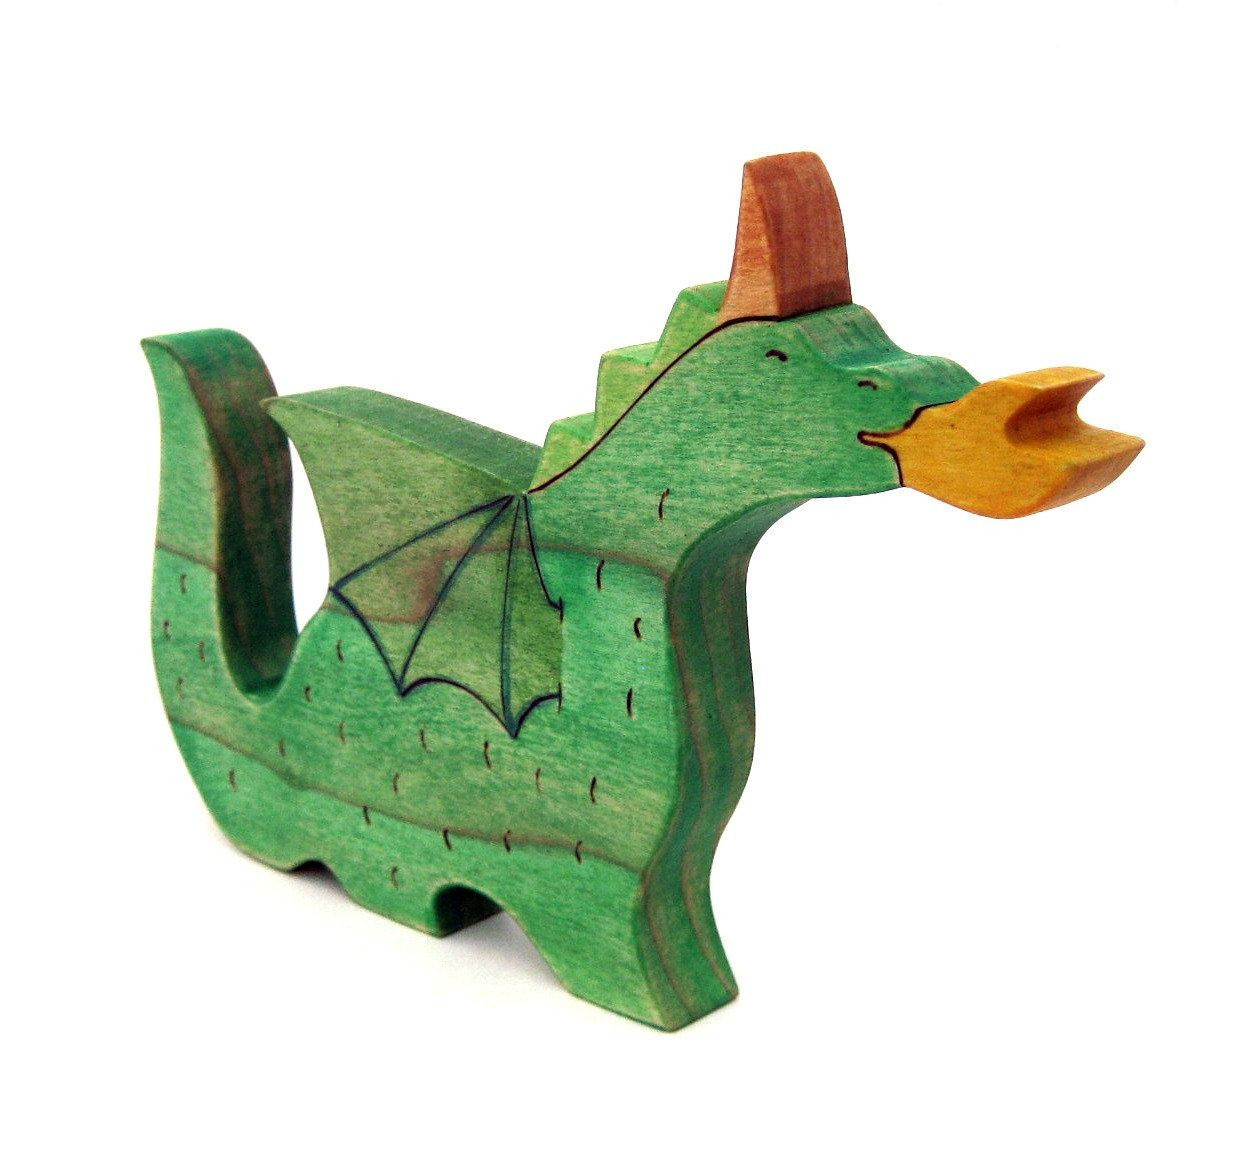 dragon toy wood toy childrens toy waldorf toy via etsy wooden nickel wood. Black Bedroom Furniture Sets. Home Design Ideas